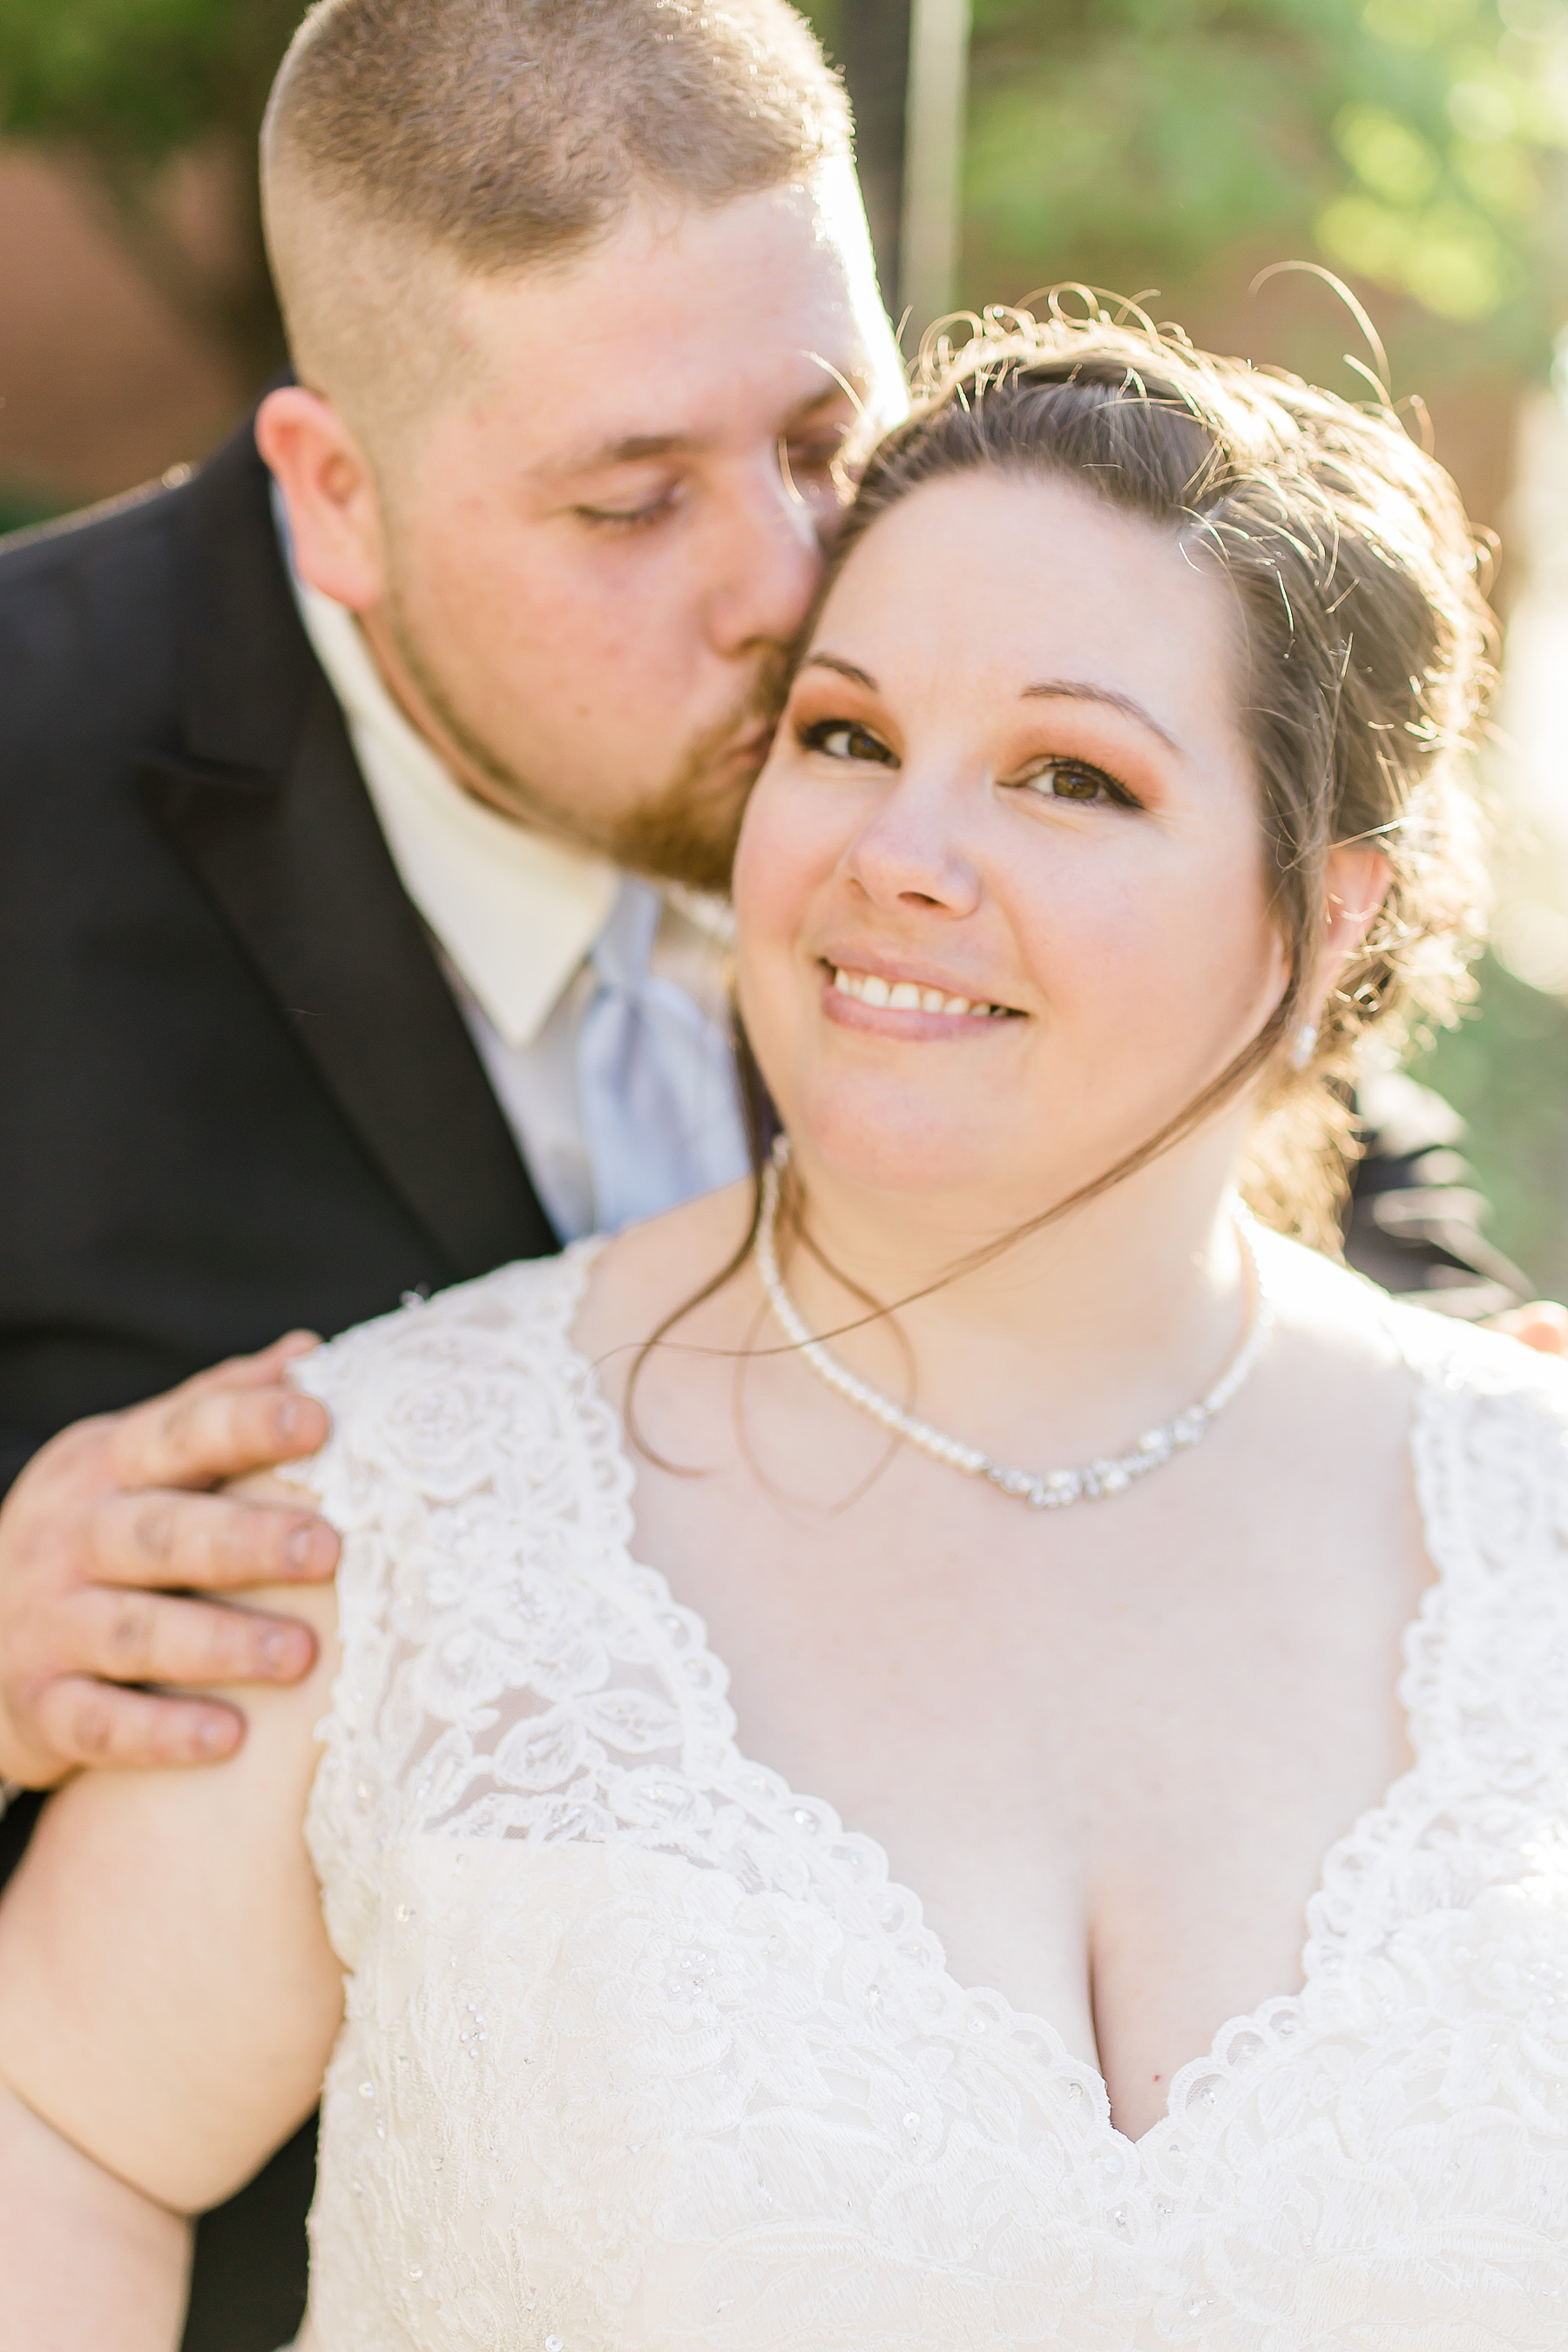 west lafayette indiana wedding photography How to Have an Organized Wedding Planning Process reduce stress wedding planning_0227.jpg